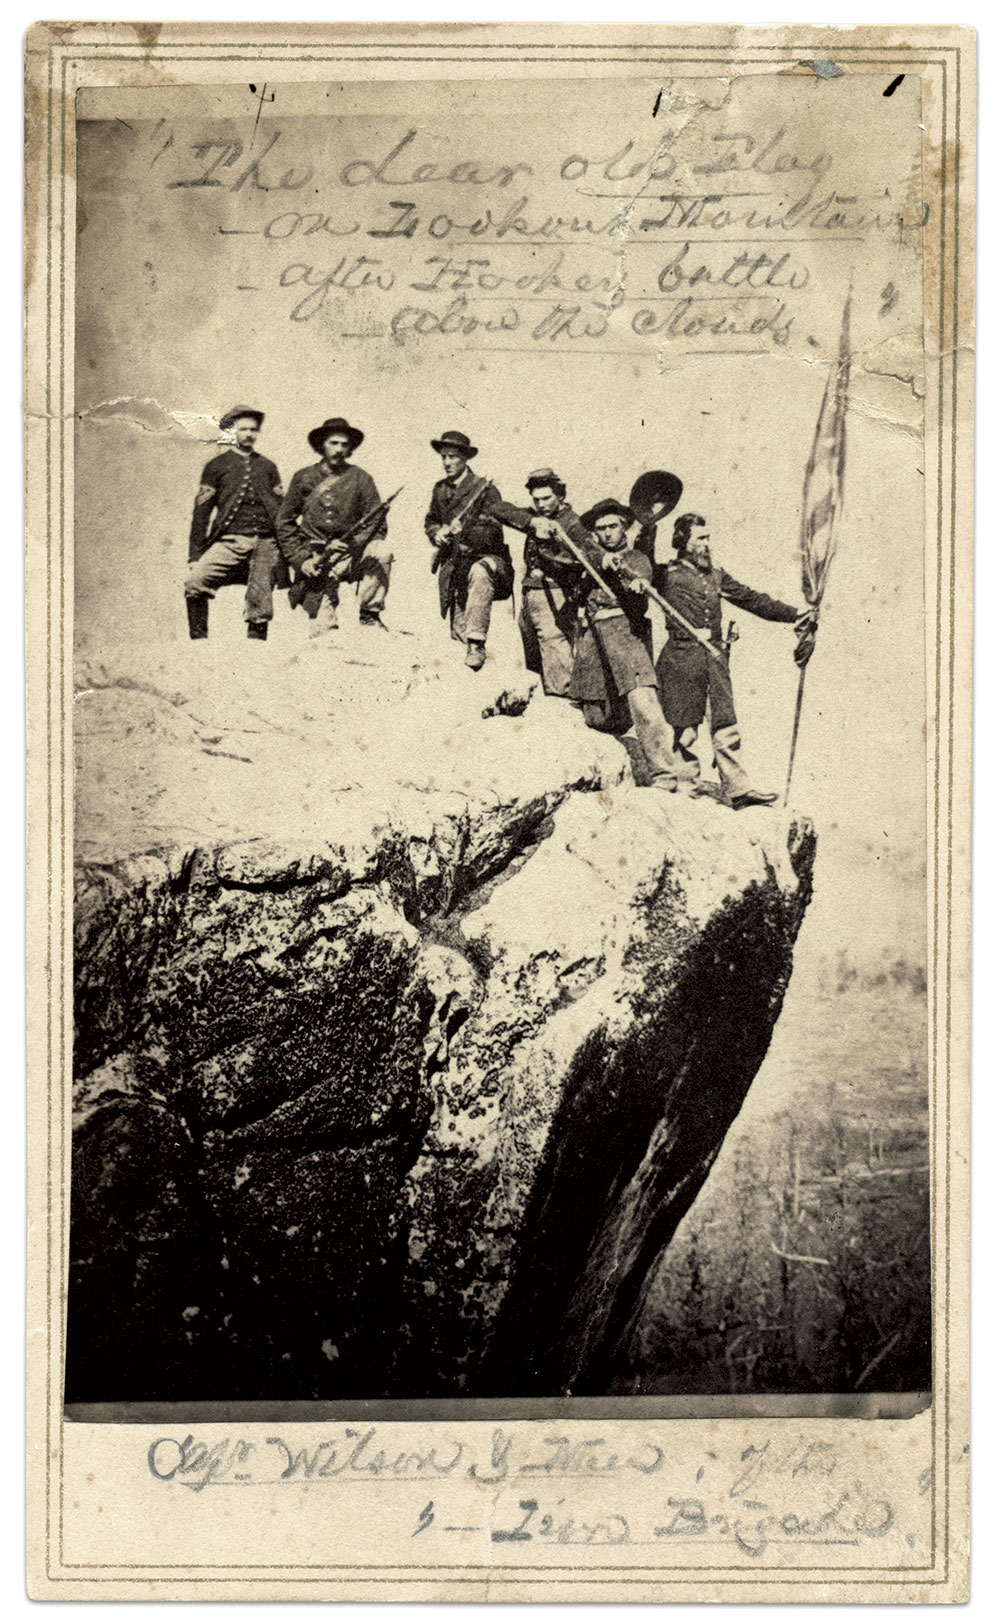 """""""The dear old Flag on Lookout Mountain after Hooker's battle above the Clouds"""" From the left: Sgt. Joseph Wagers, Pvt. Joseph Bradley, Sgt. Harris H. Davis, Pvt. William Witt, Sgt. James Wood, and Capt. John Wilson of the 8th Kentucky Infantry, a regiment in the Iron Brigade."""